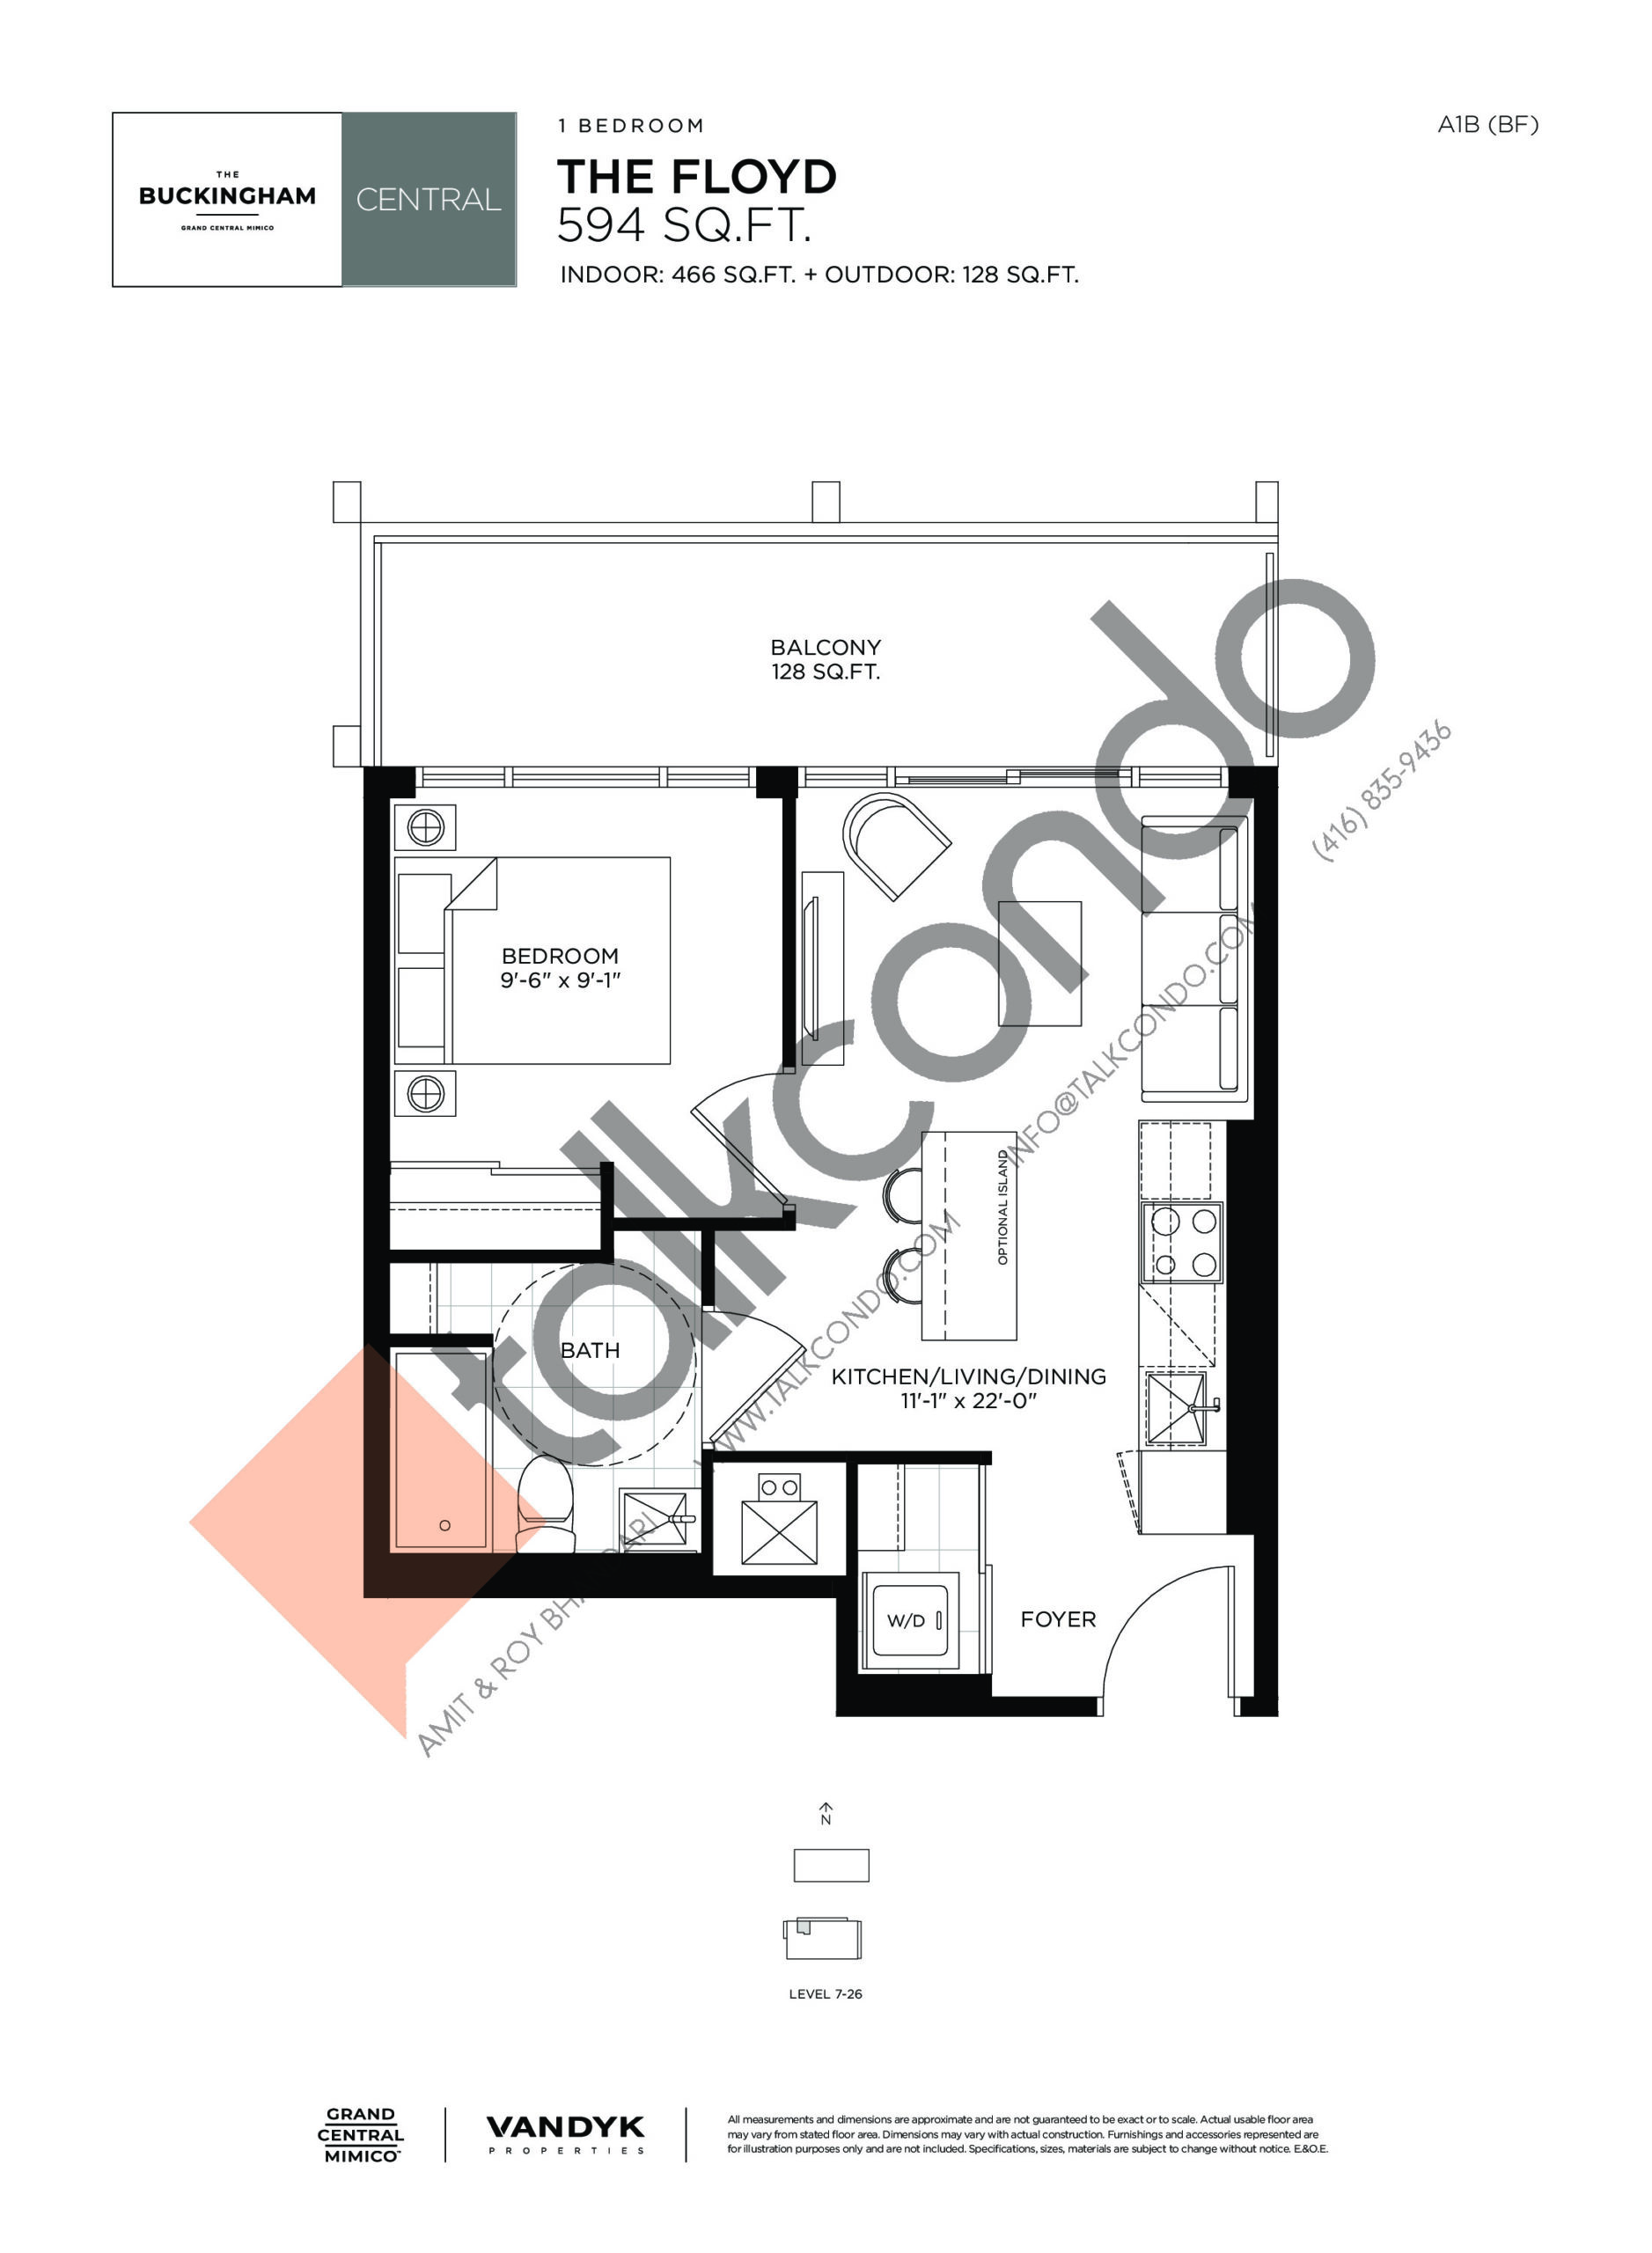 The Floyd Floor Plan at Grand Central Mimico Condos - 466 sq.ft